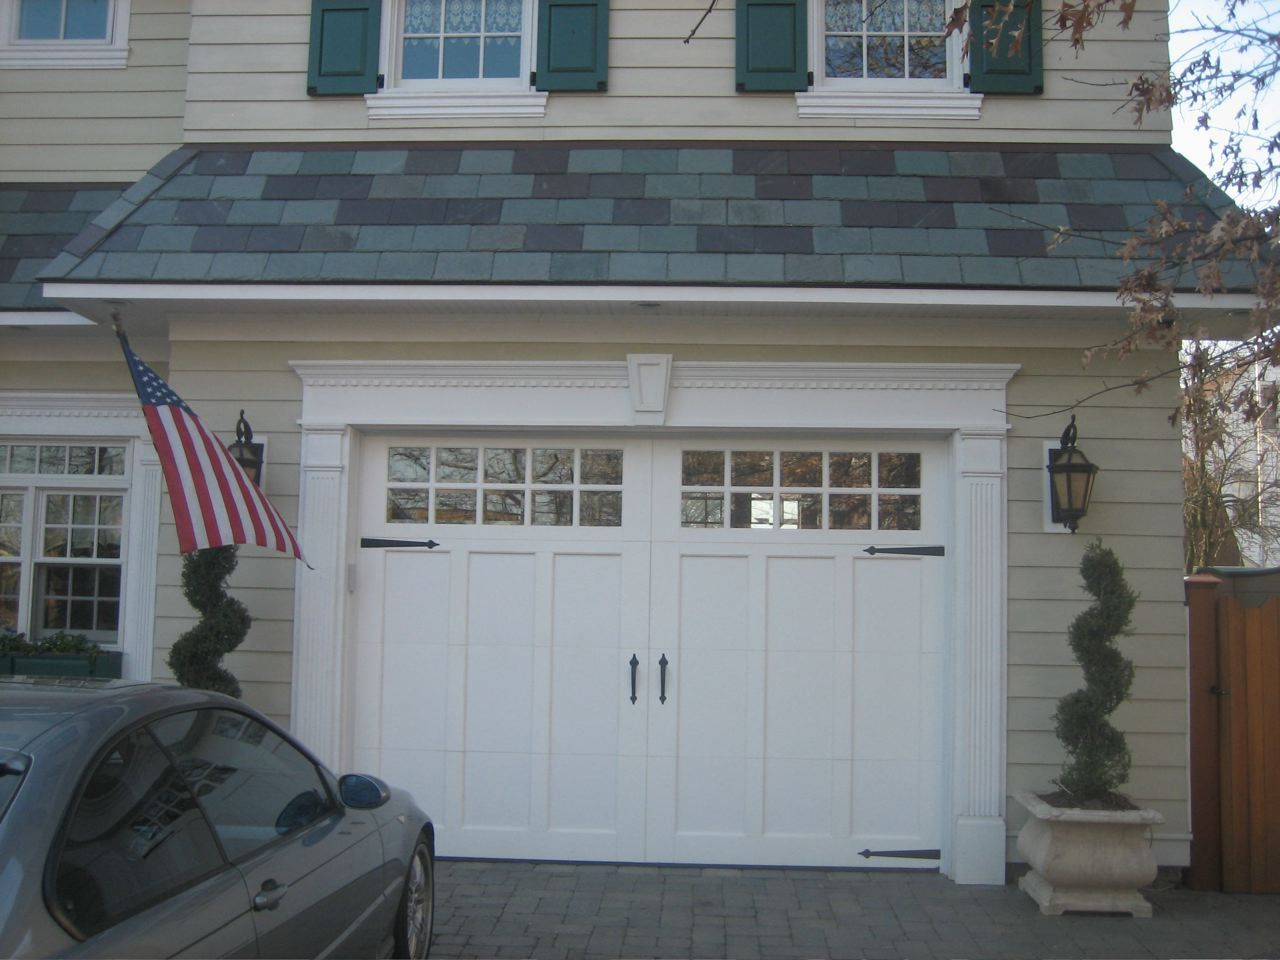 Garage door trim moulding - Azek Trim Front Door Azek Www Azek Com Azek Is The Leading Brand Of Cellular